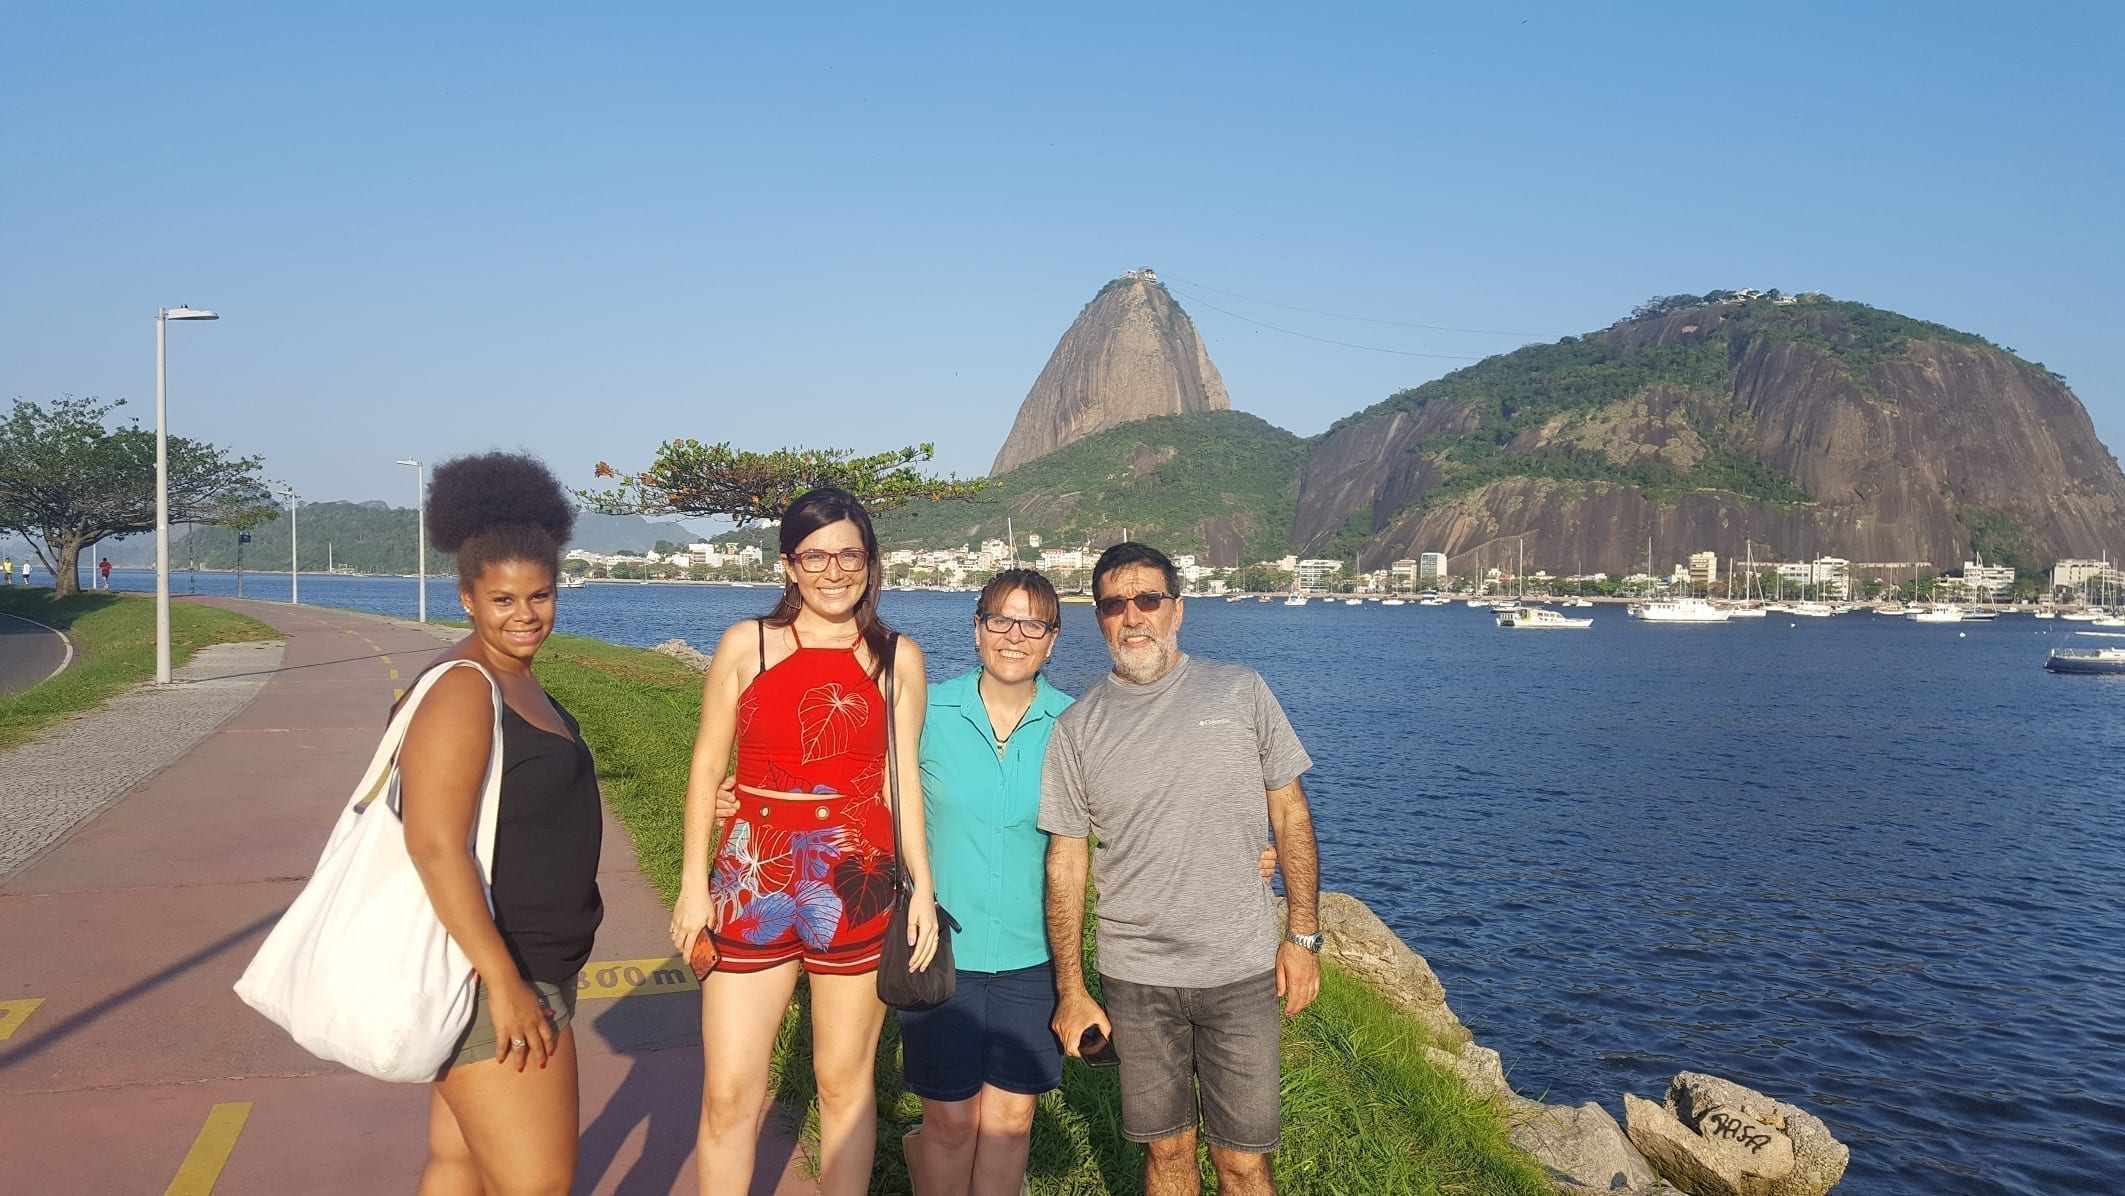 Rio of Saint Sebastian. Walking by the Botafogo cove and enjoying the view of the Sugarloaf Mountain.